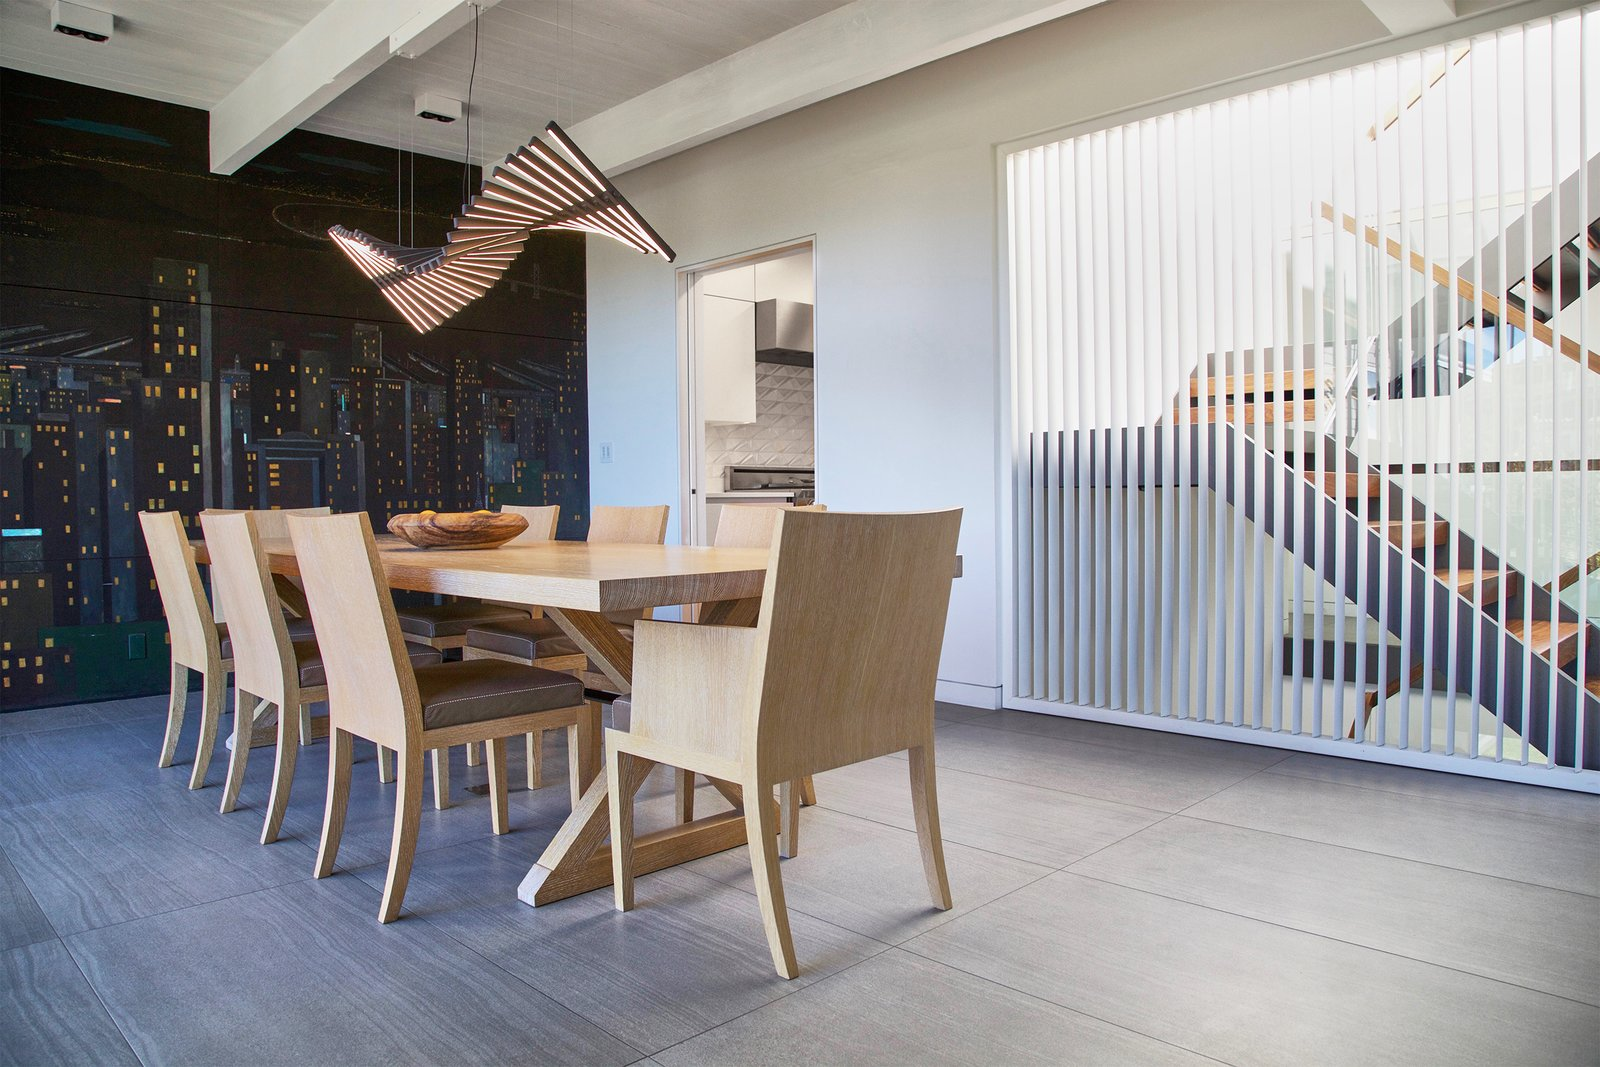 Dining Room, Chair, Table, Ceramic Tile Floor, Accent Lighting, and Track Lighting Dining Room - operable louvers at stair, original Jose Moya del Pino cityscape mural, Vibia Rythm light, Hermés table and chairs  Lyon Residence by Diego Pacheco Design Practice